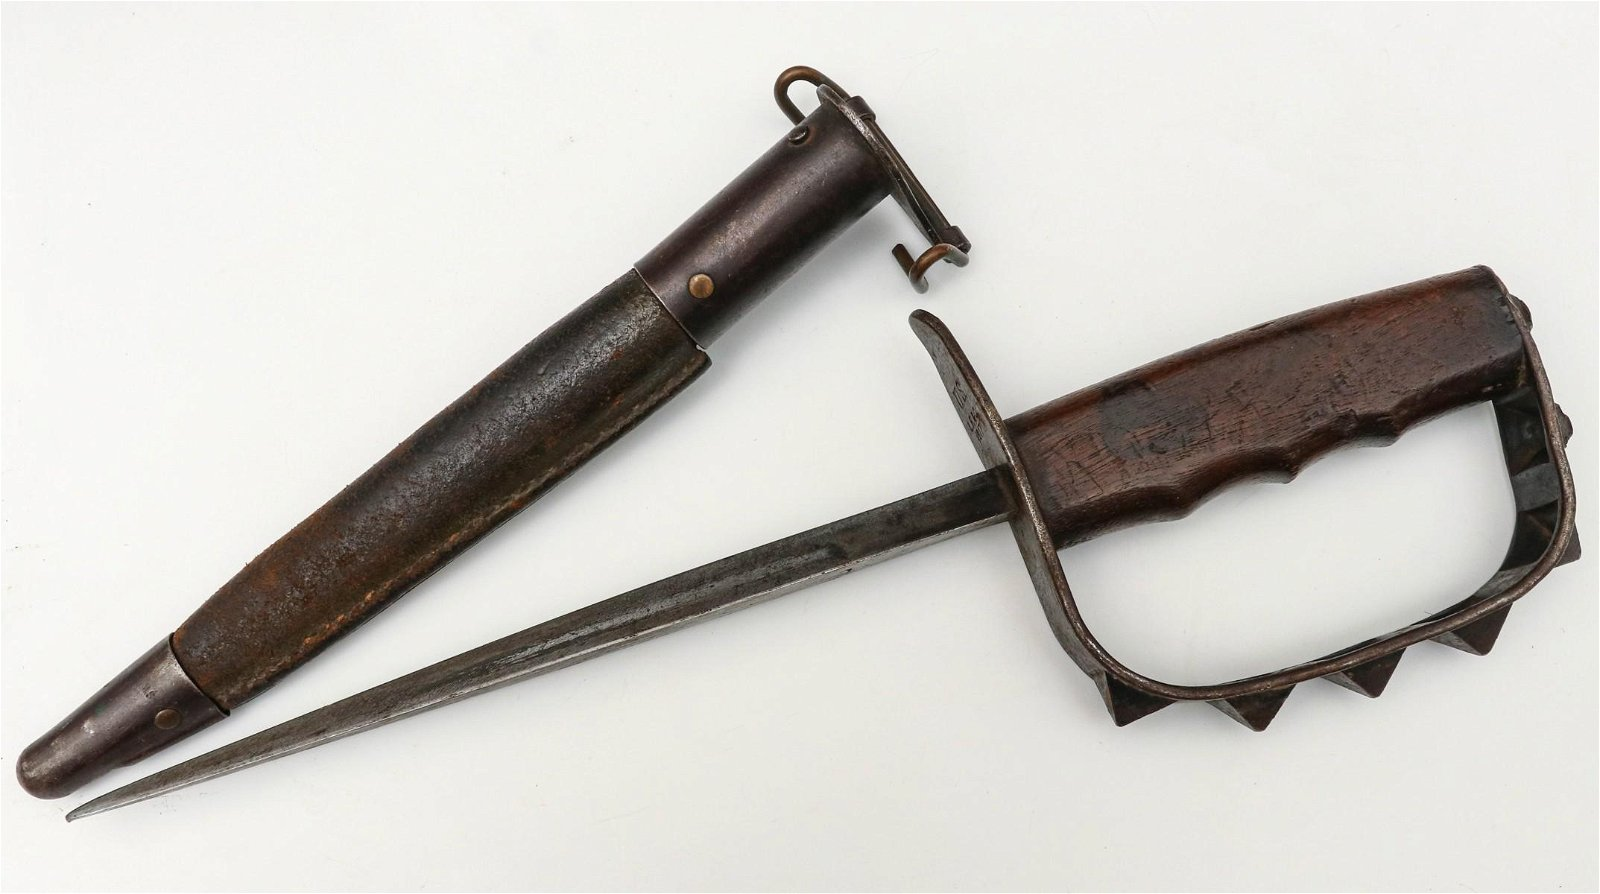 US ARMY WWI M-17 KNUCKLE DUSTER TRENCH KNIFE